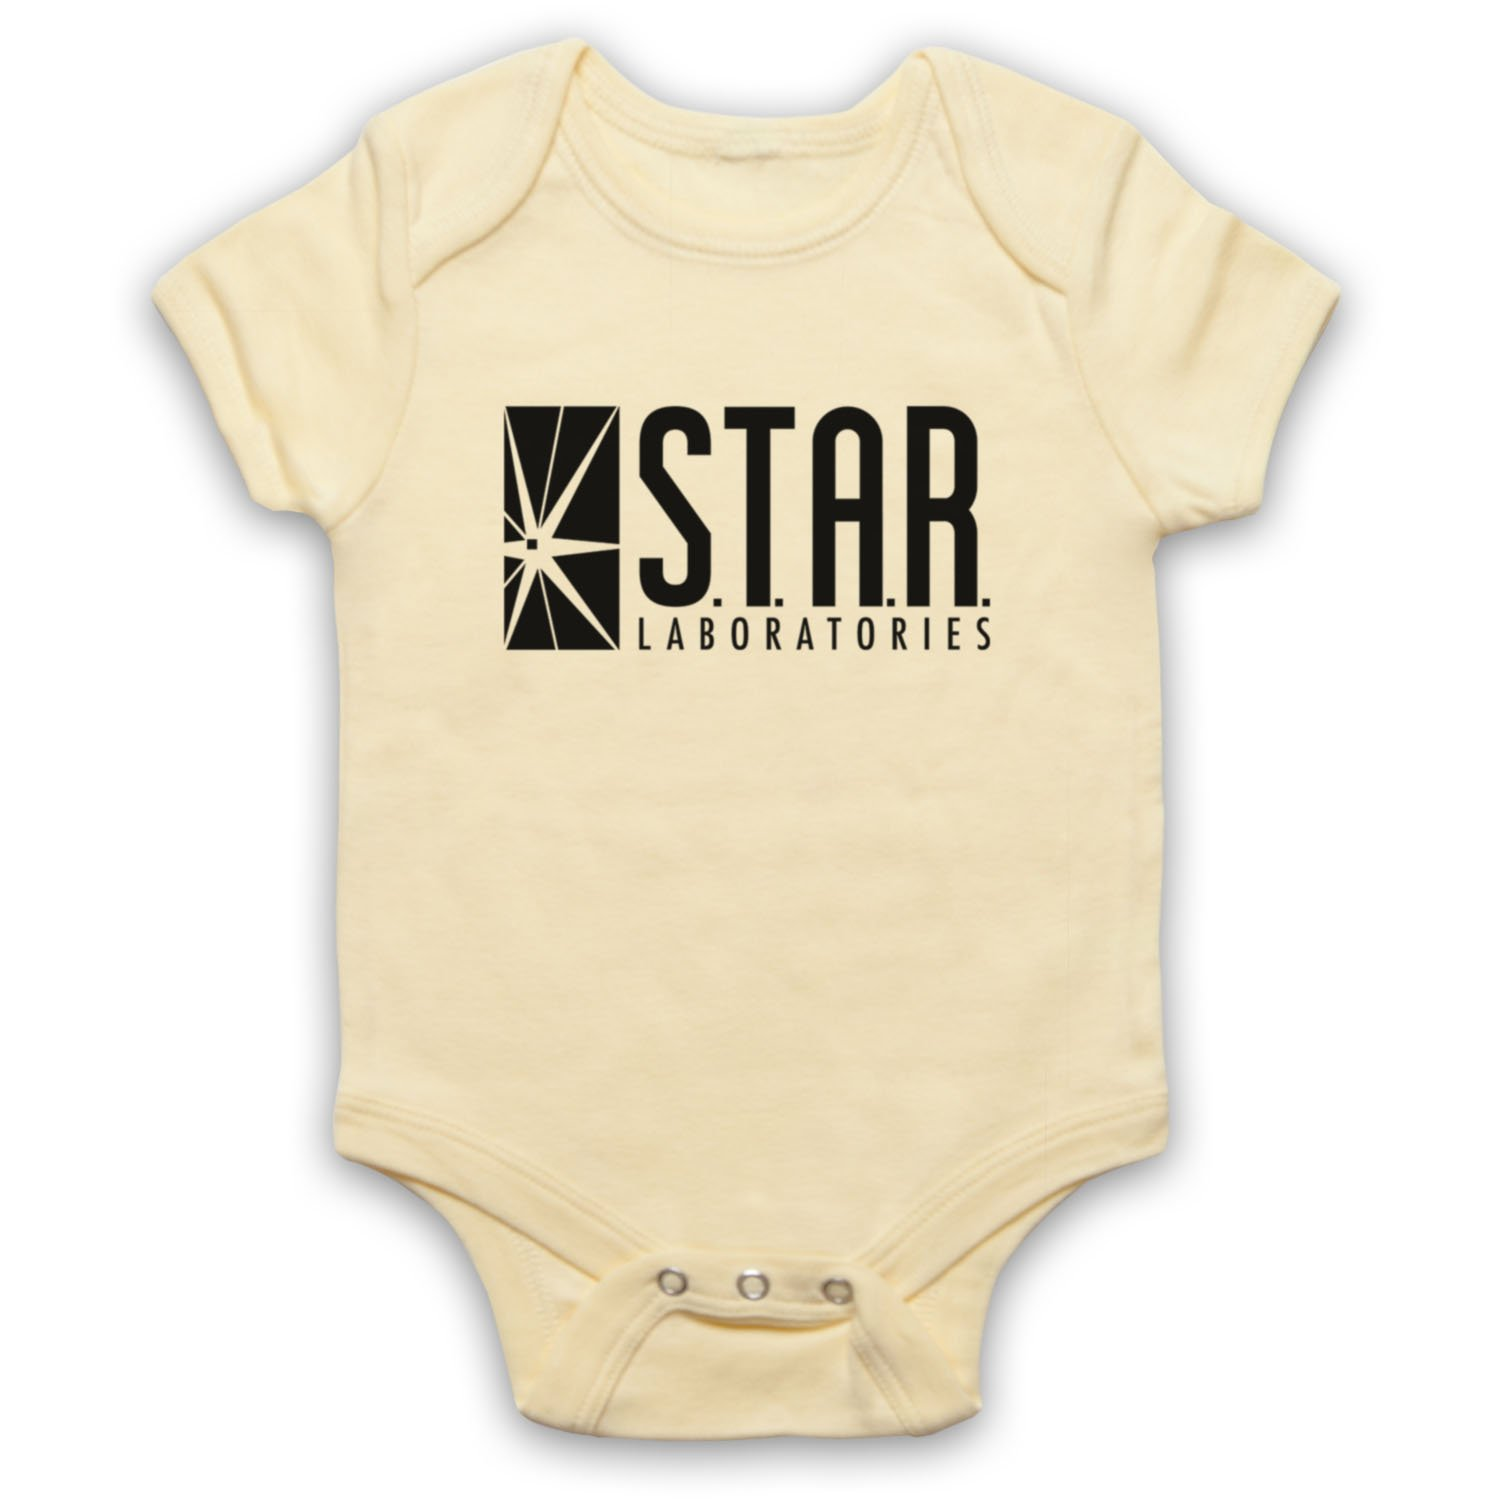 The Flash Star Laboratories Bebe Barboteuse Body